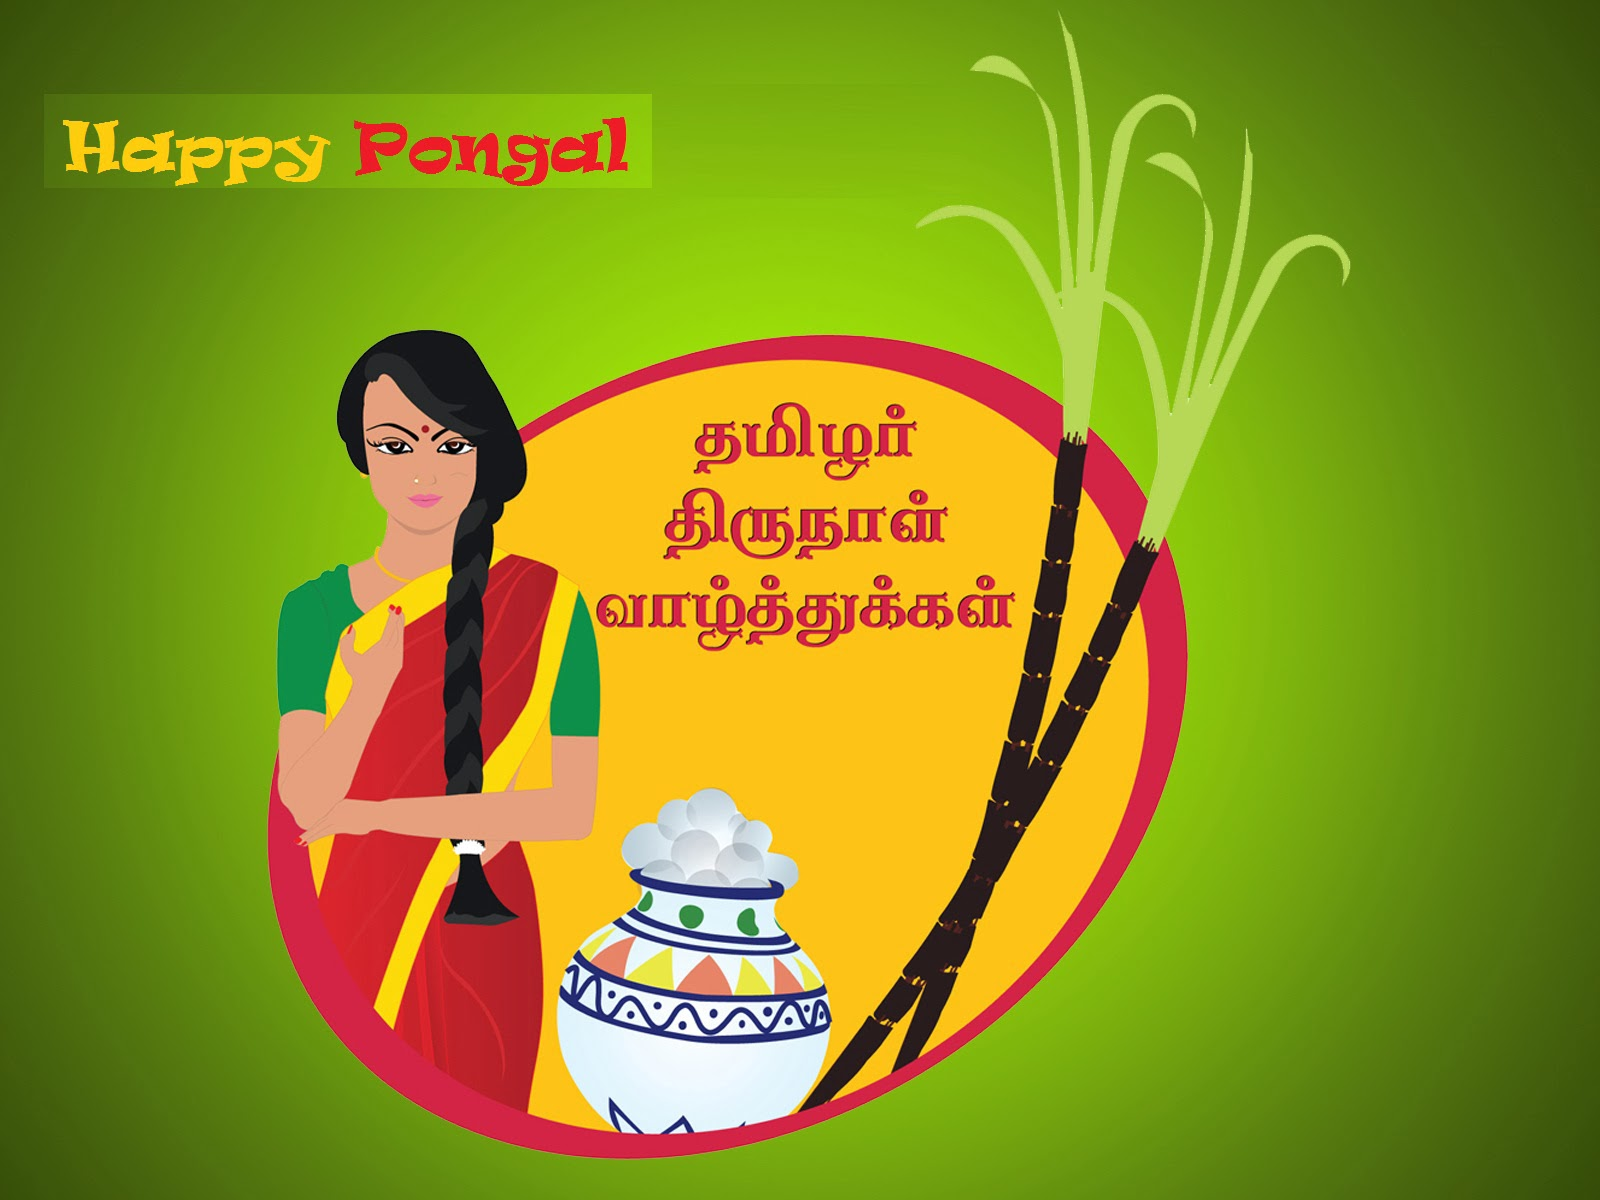 Tamil Pongal Sms Greetings Photos 2014 Pongal Greetings Cards